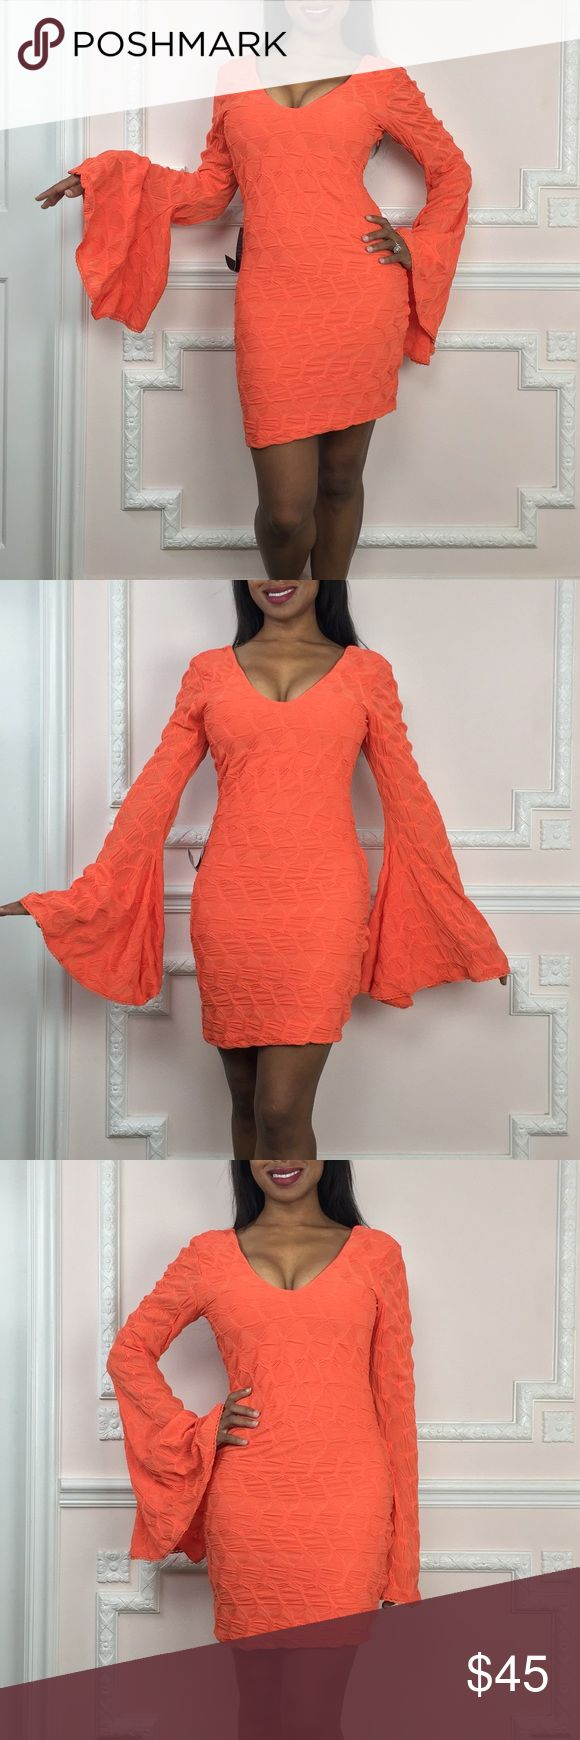 Bebe NEW Orange party dress with bell sleeves NWT - perfect condition- New with tags. The sleeves on this dress are everything. Its like a cape for your arms! The bright color is unmissable and this dress is fully lined. Hidden zip at side. For reference I am 5'2 95% Polyester 5% Spandex Measurements (Flat) Length - 28 inches Underarm to bottom hem Bust- 31 inches Waist - 28 Inches Hip- 32 inches Visit and follow my closet for HUNDREDS of styles in all price ranges! bebe Dresses Mini